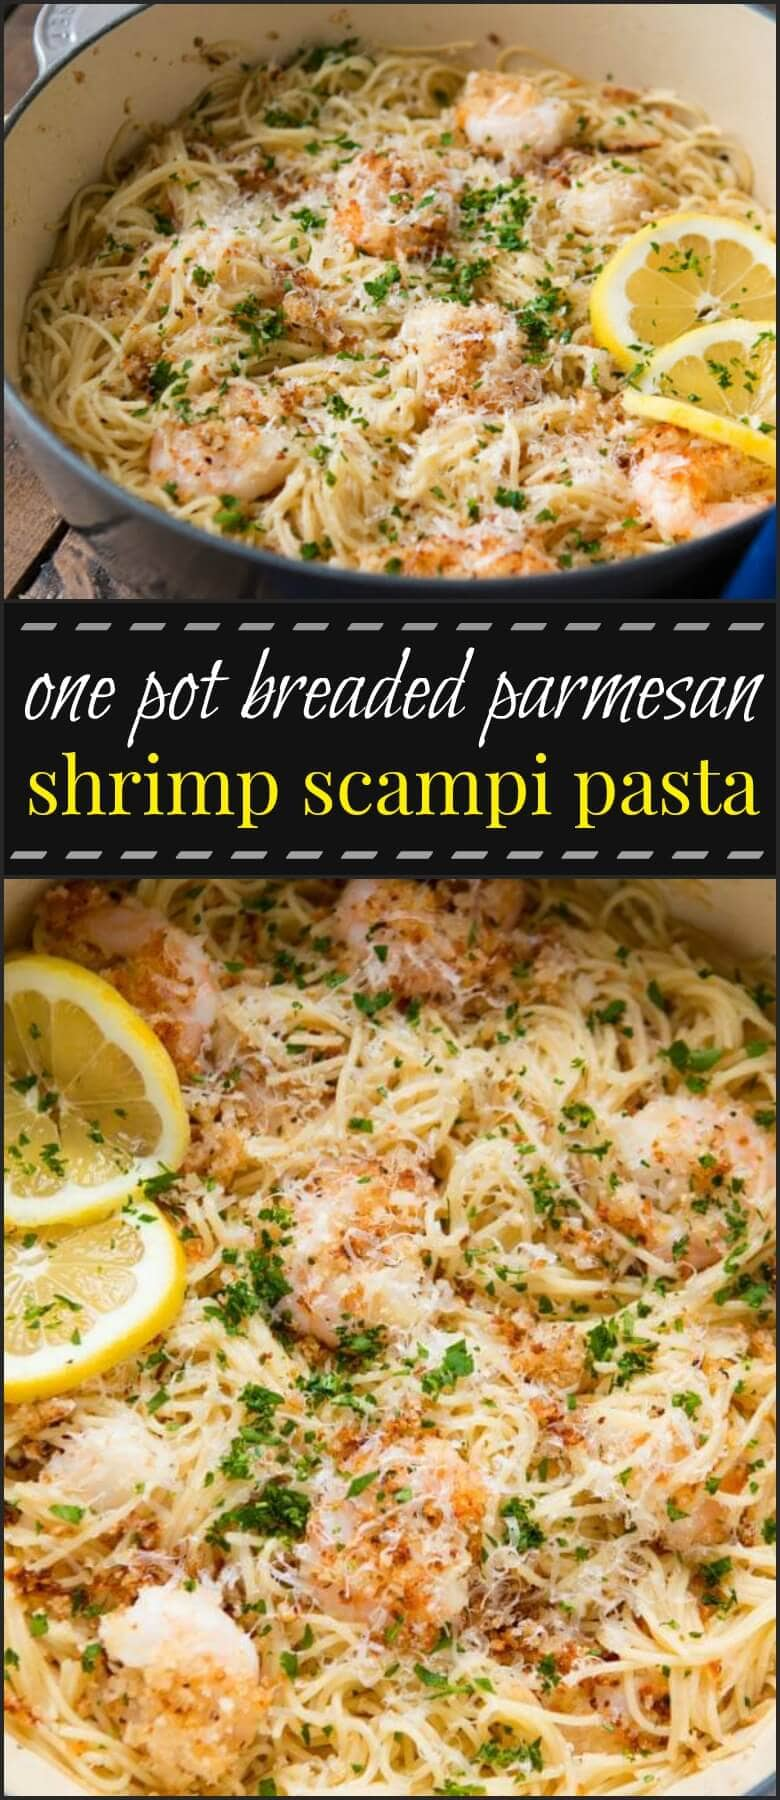 If there's one thing I know, it's that people love their shrimp pasta, but this one pot breaded parmesan shrimp scampi pasta takes it to a whole new level.